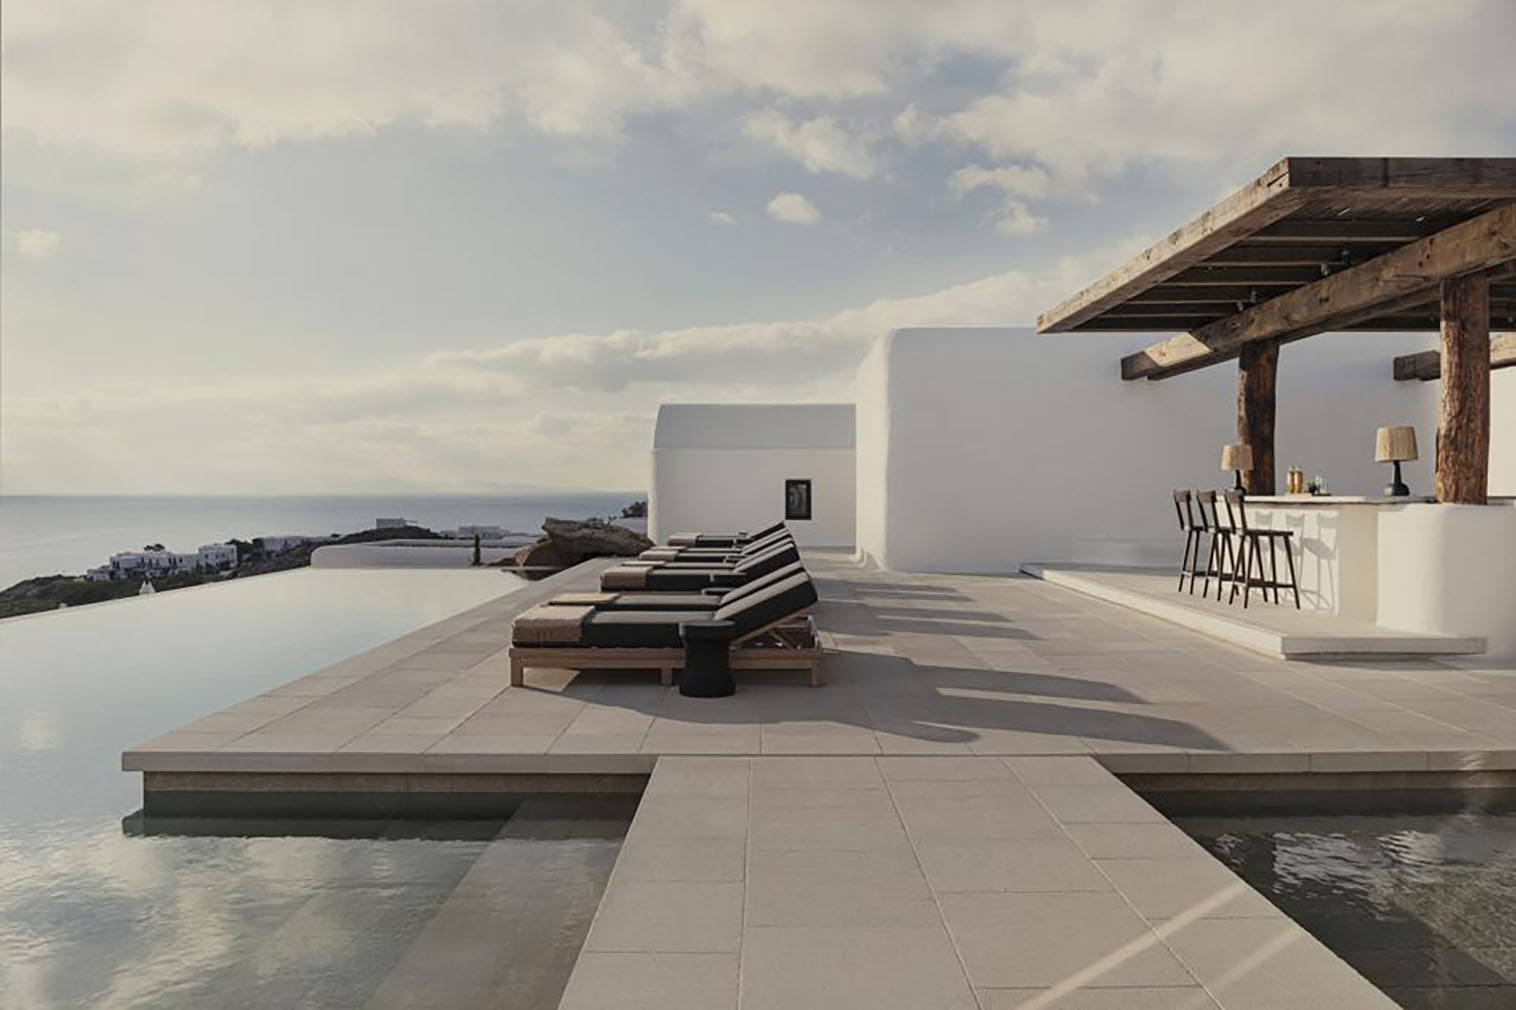 The rustic minimalism of Kalesma, Mykonos blends cycladic design with clean lines, concrete and reflective pools